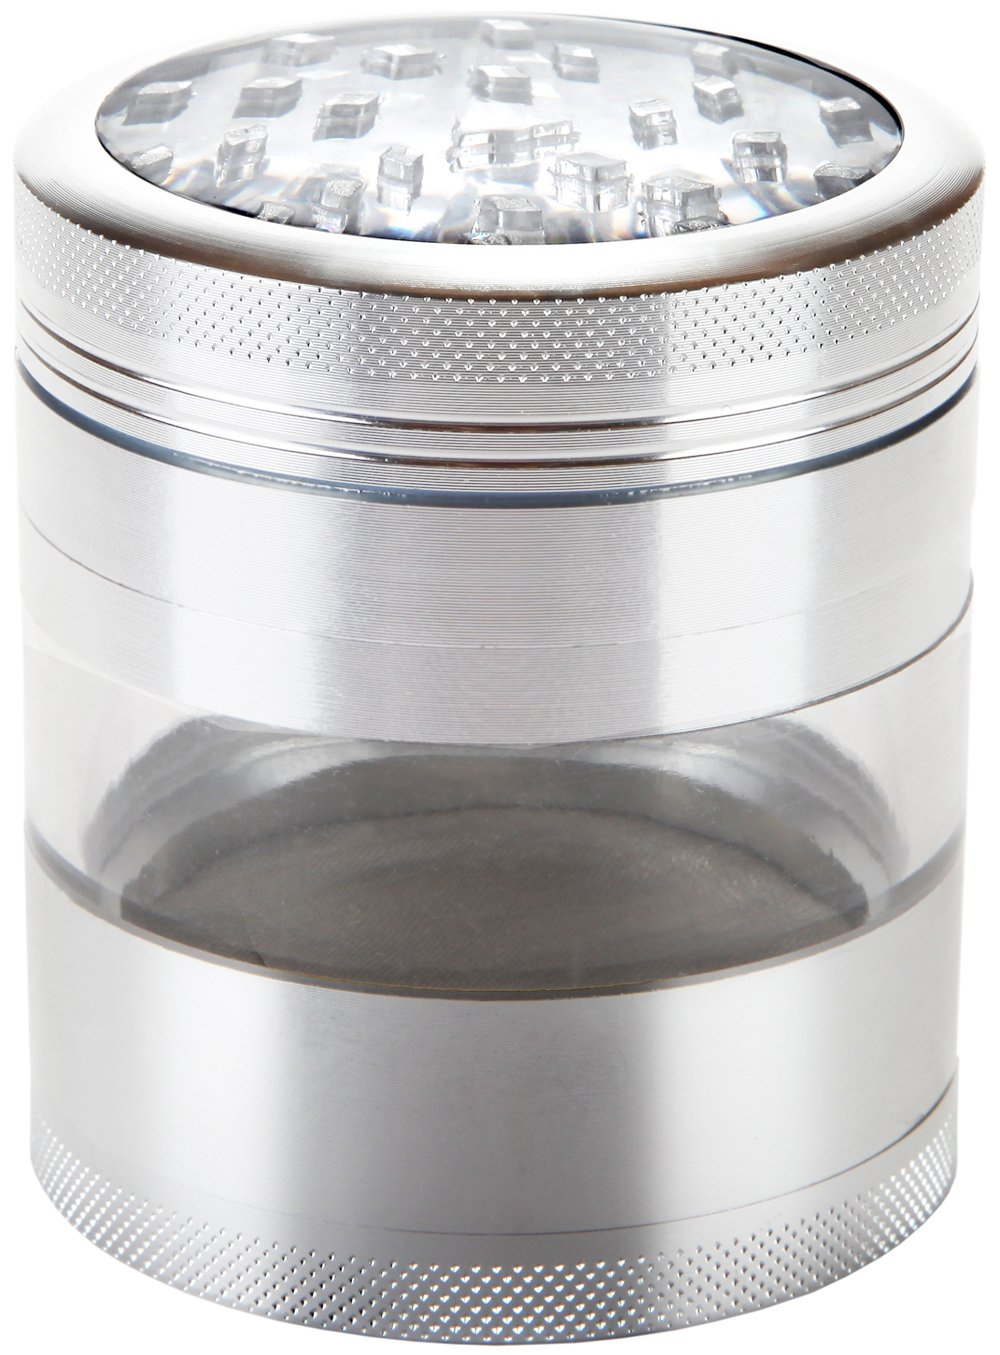 Zip Grinders - Pagoda Tower Spice and Herb Grinder - (2.5